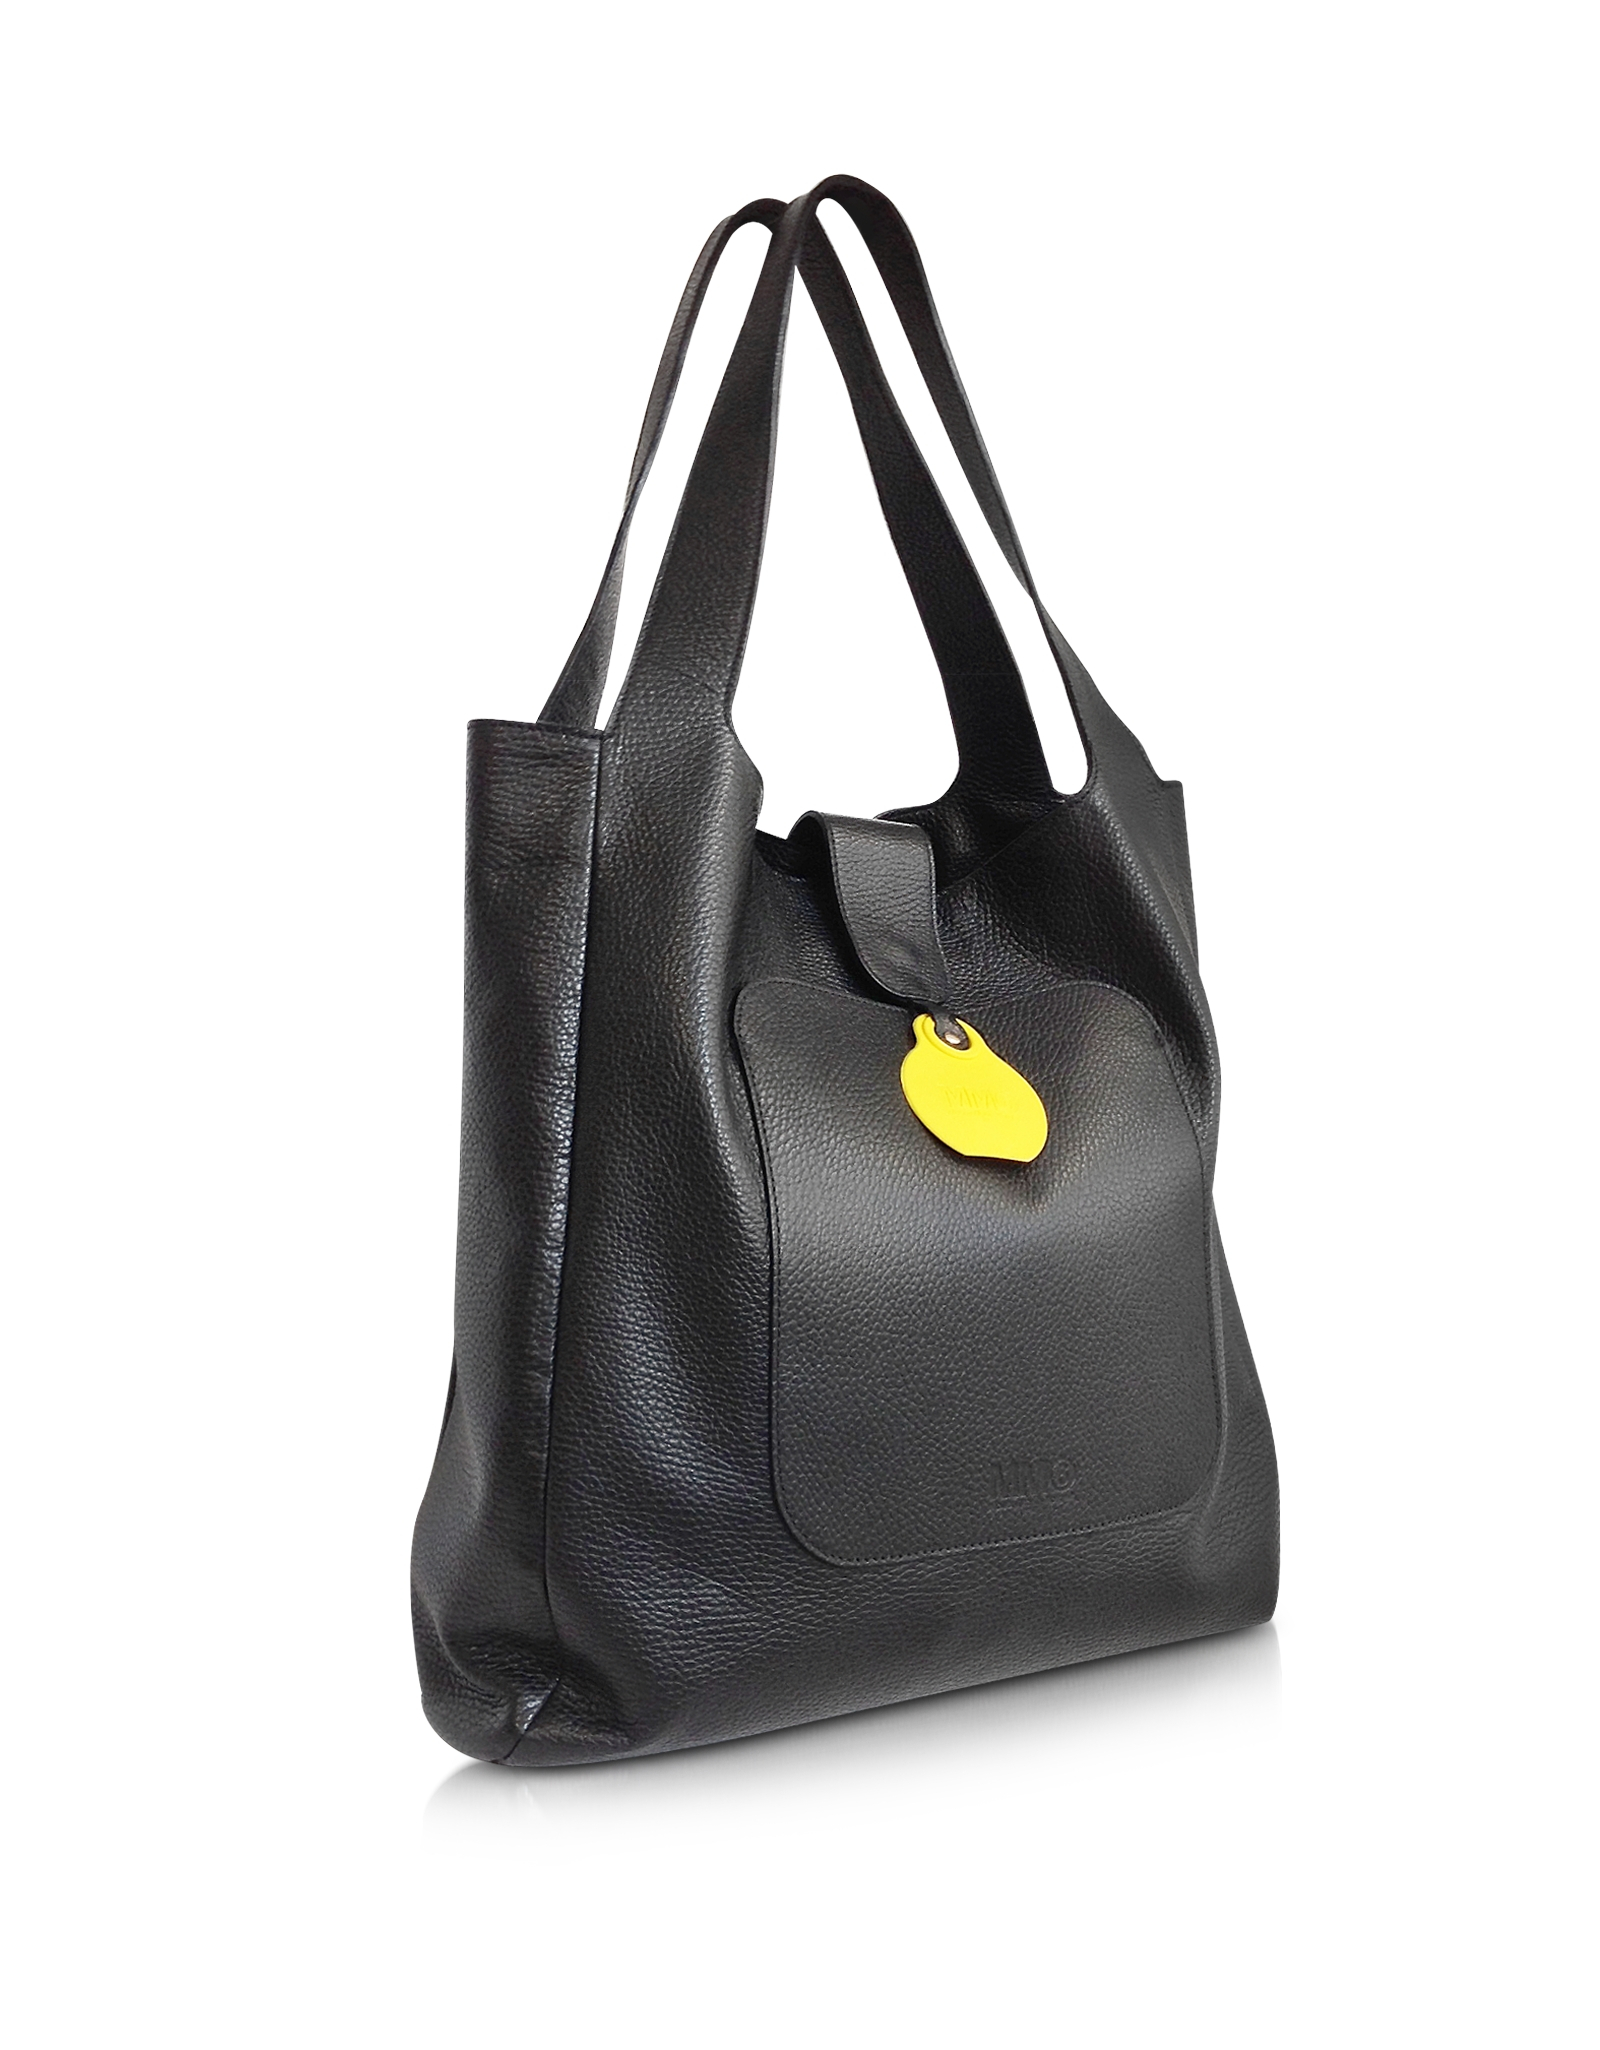 Mm6 by maison martin margiela Large Black Leather Shopping Bag in ...